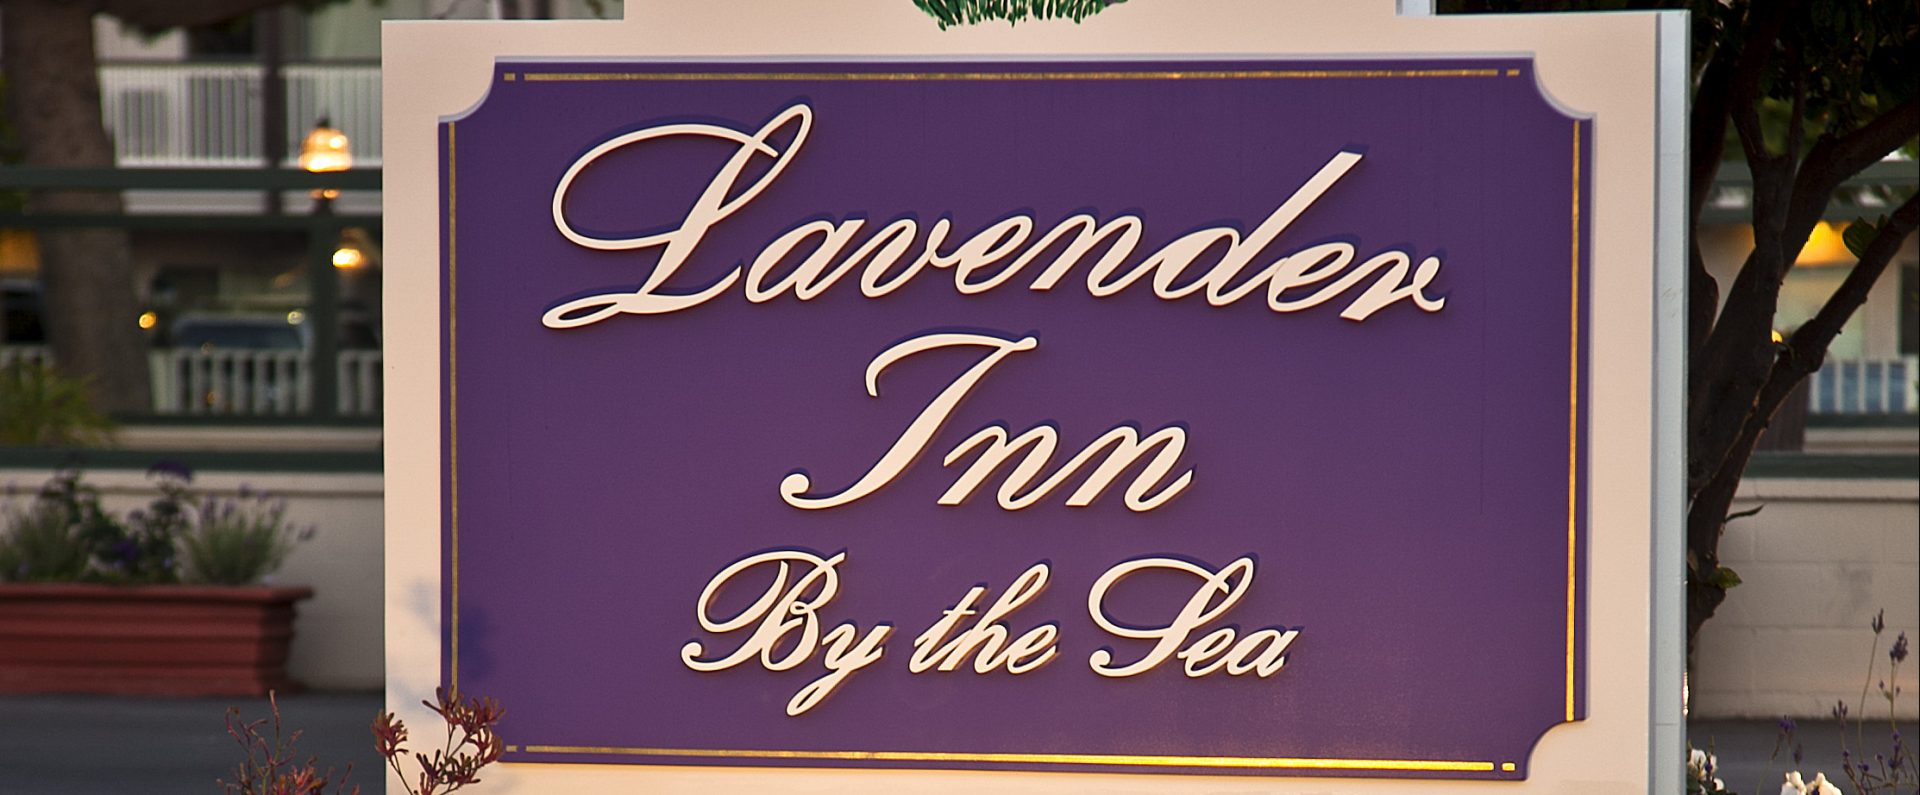 Lavender Inn by the Sea exterior sign